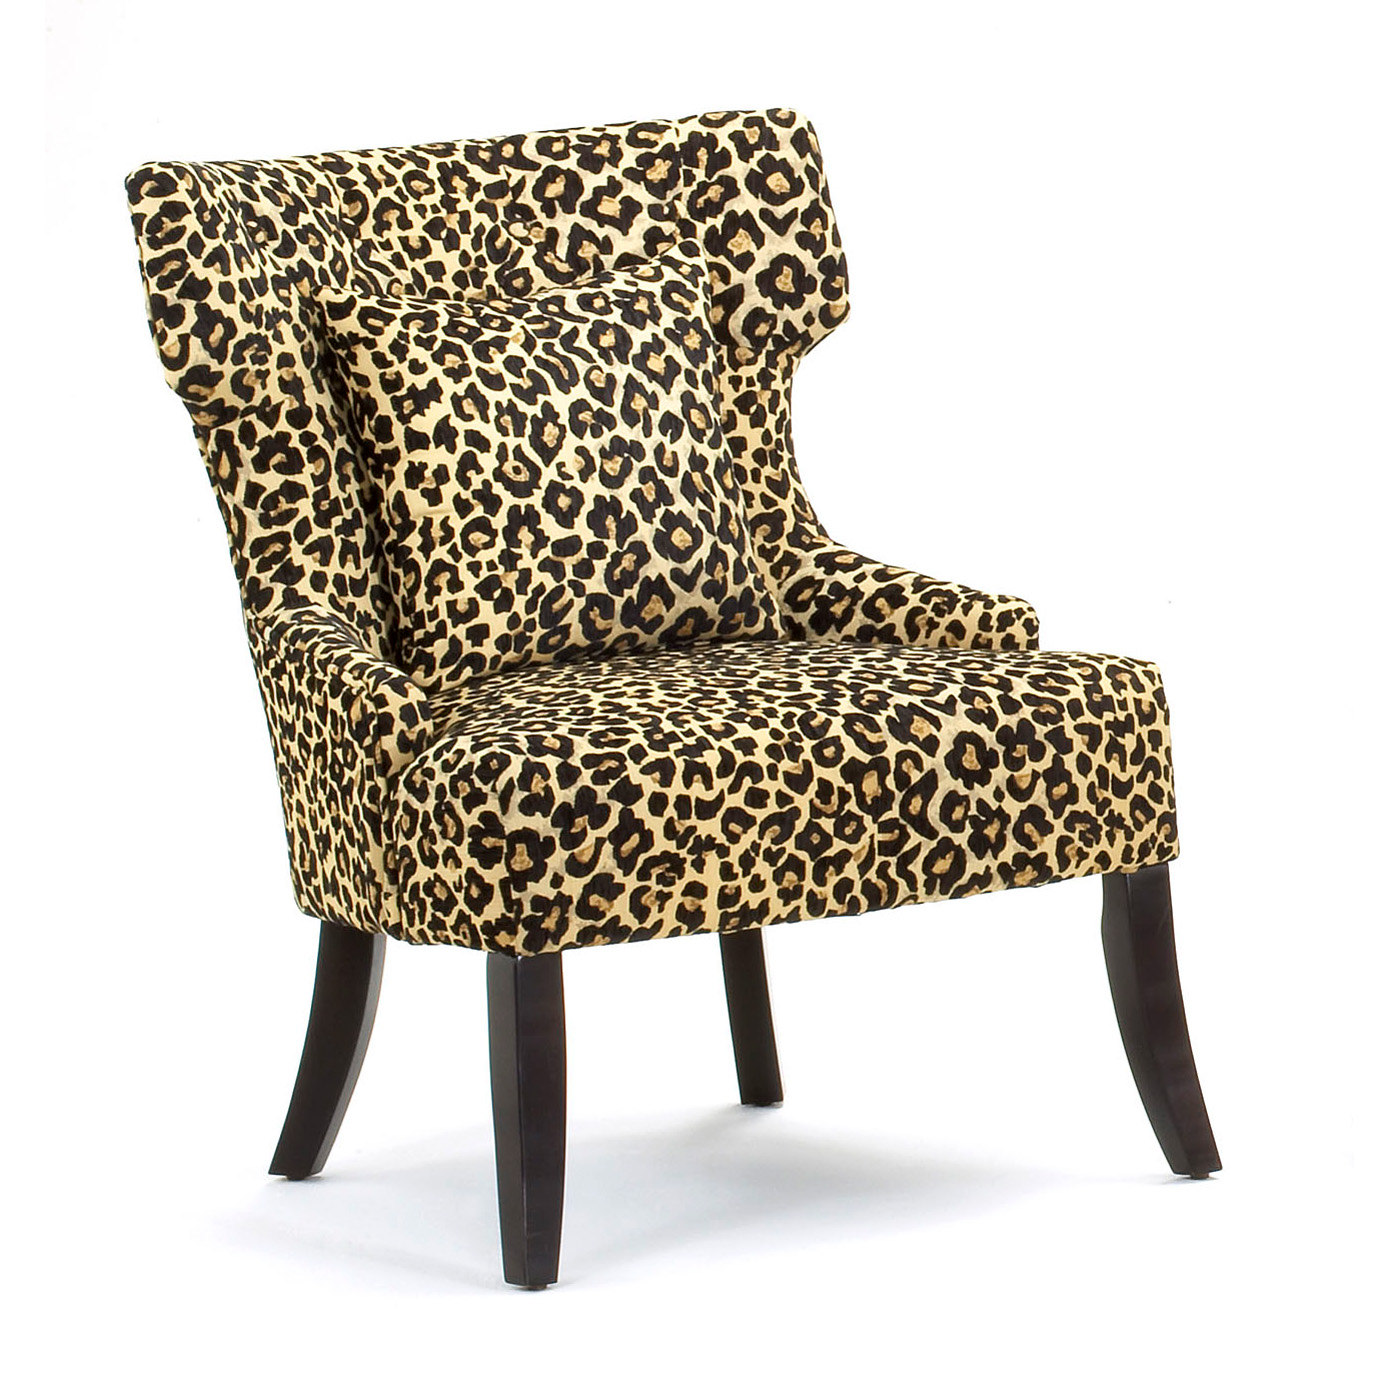 Cheetah Chair Gaia Leopard Print Accent Chair At Hayneedle